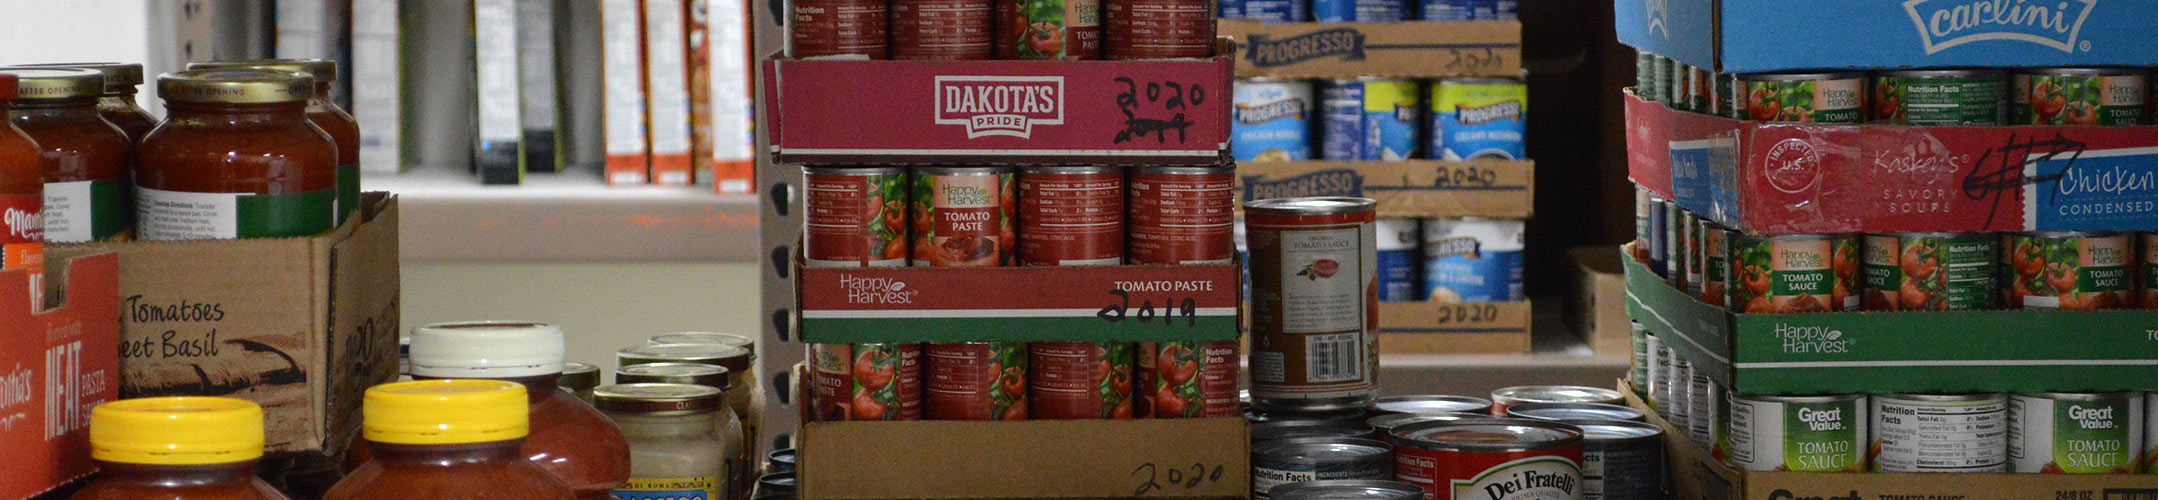 Shelves of Canned Good at Food Pantry